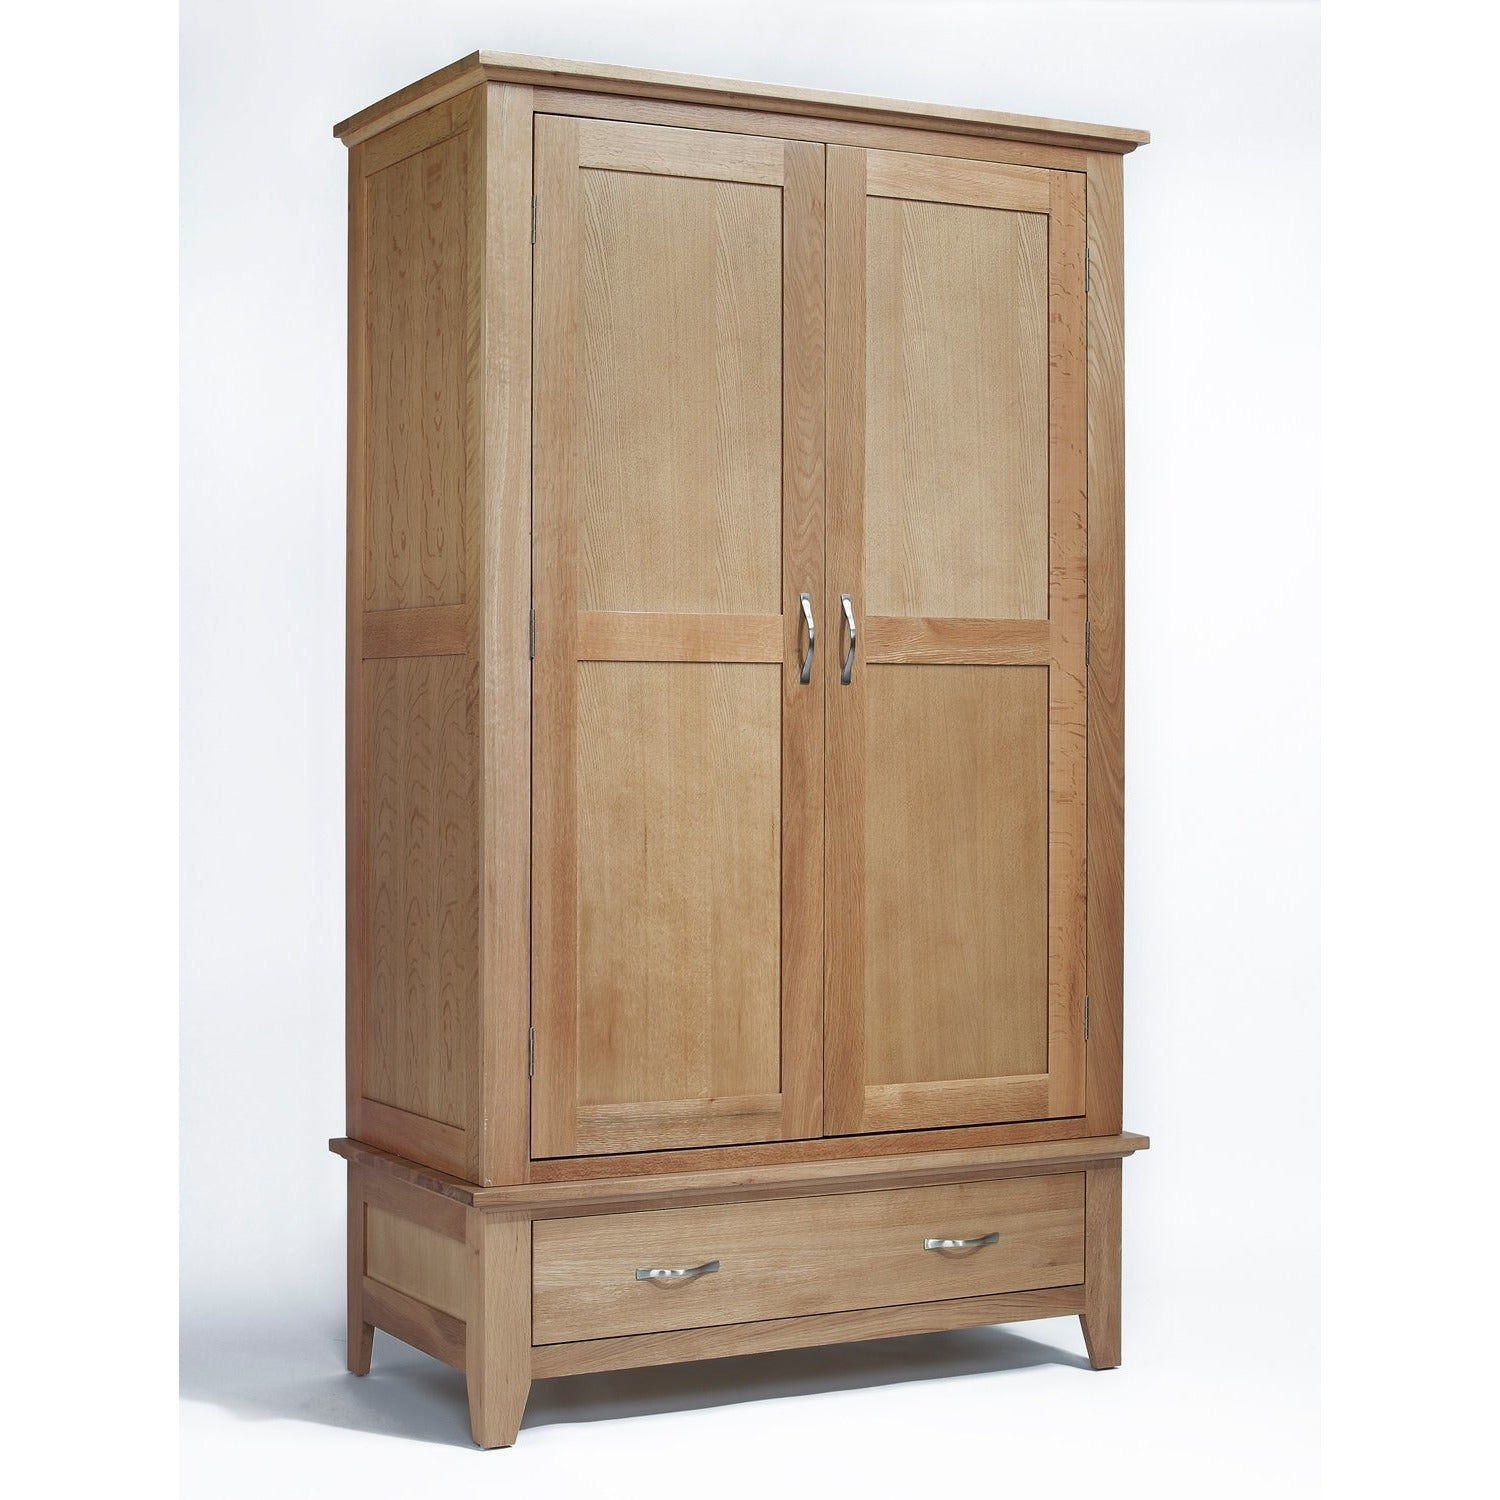 Sherwood Oak Double Wardrobe 1 Drawer - Perfectly Home Interiors